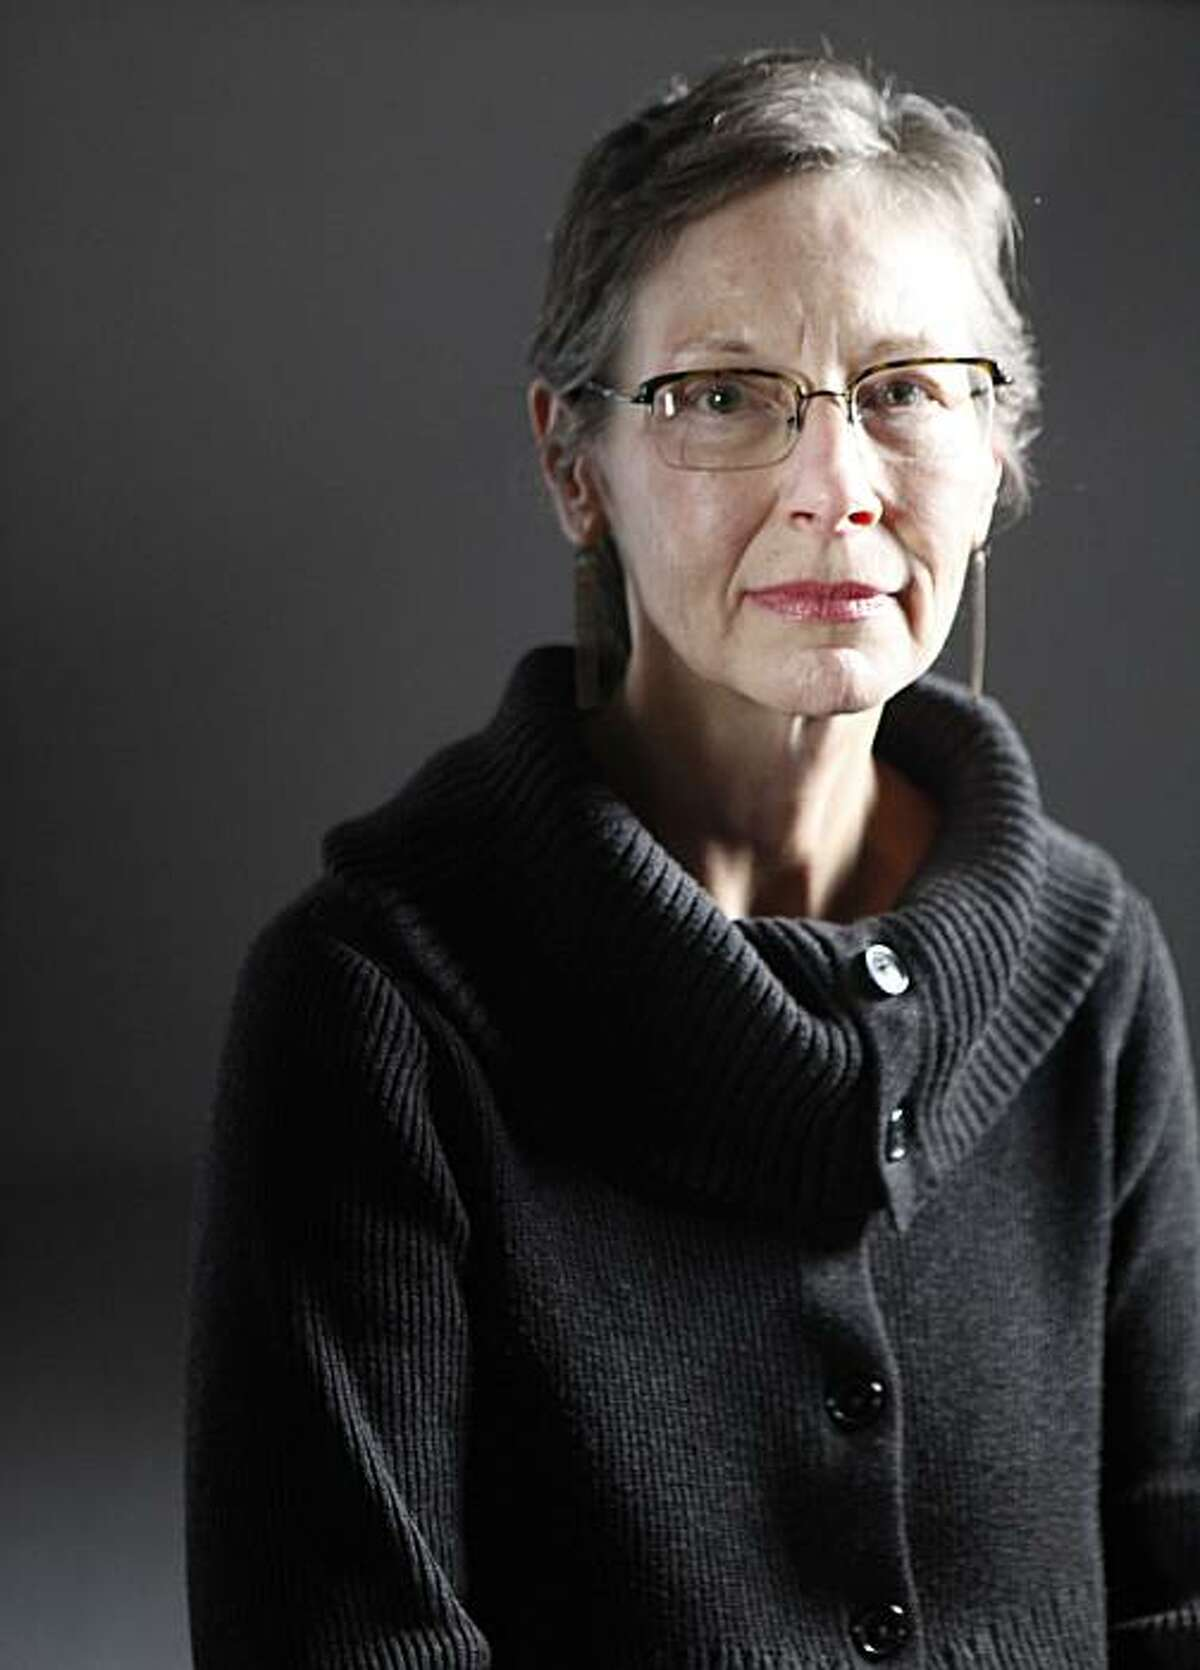 Carol Sklenicka, author of a biography of American fiction writer Raymond Carver, sits for a portrait on Monday Dec. 7, 2009 in San Francisco, Calif.